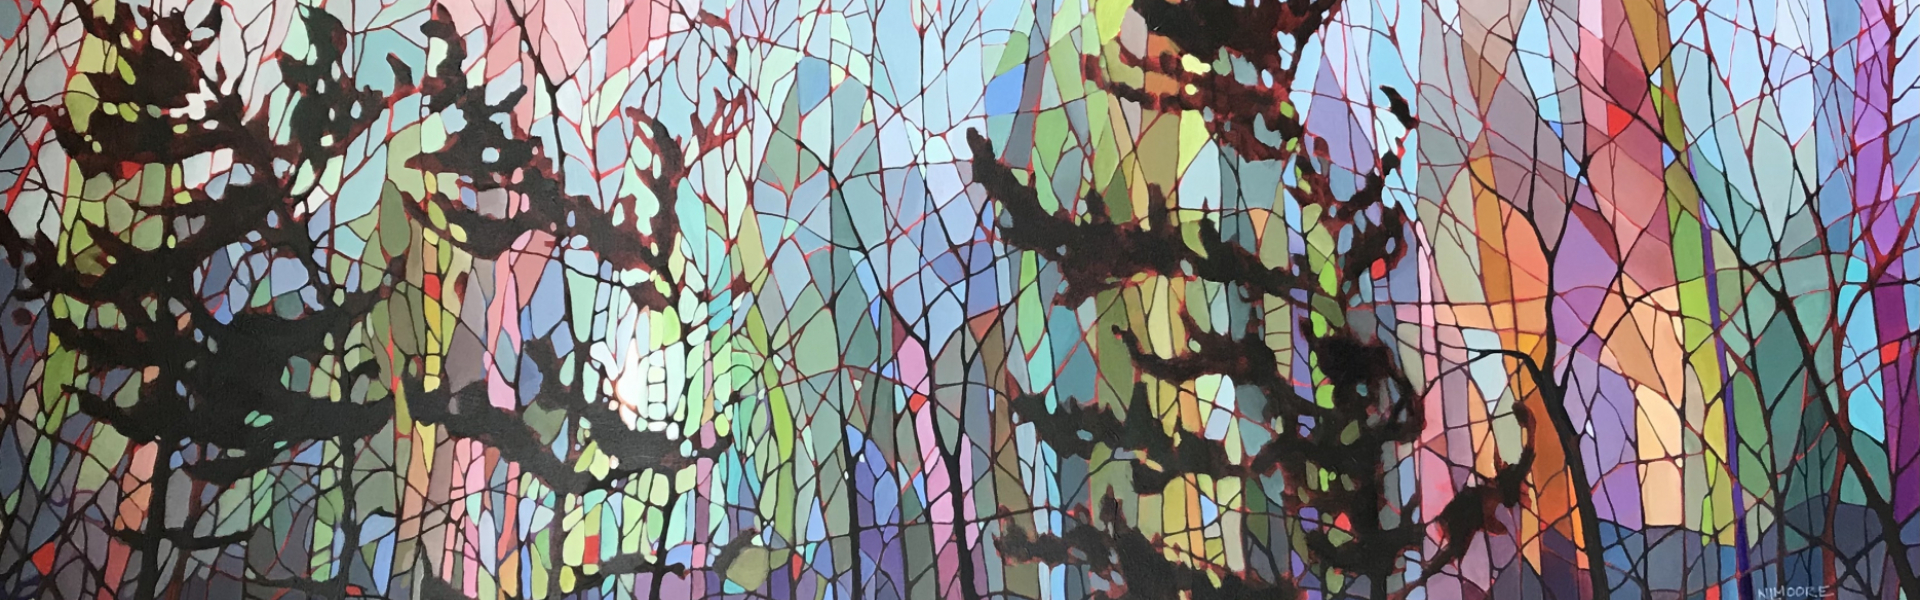 banner_NancyLMoore-Wind-Blown-White-Pines-acrylic-on-canvas-2021.20210518143607.jpg